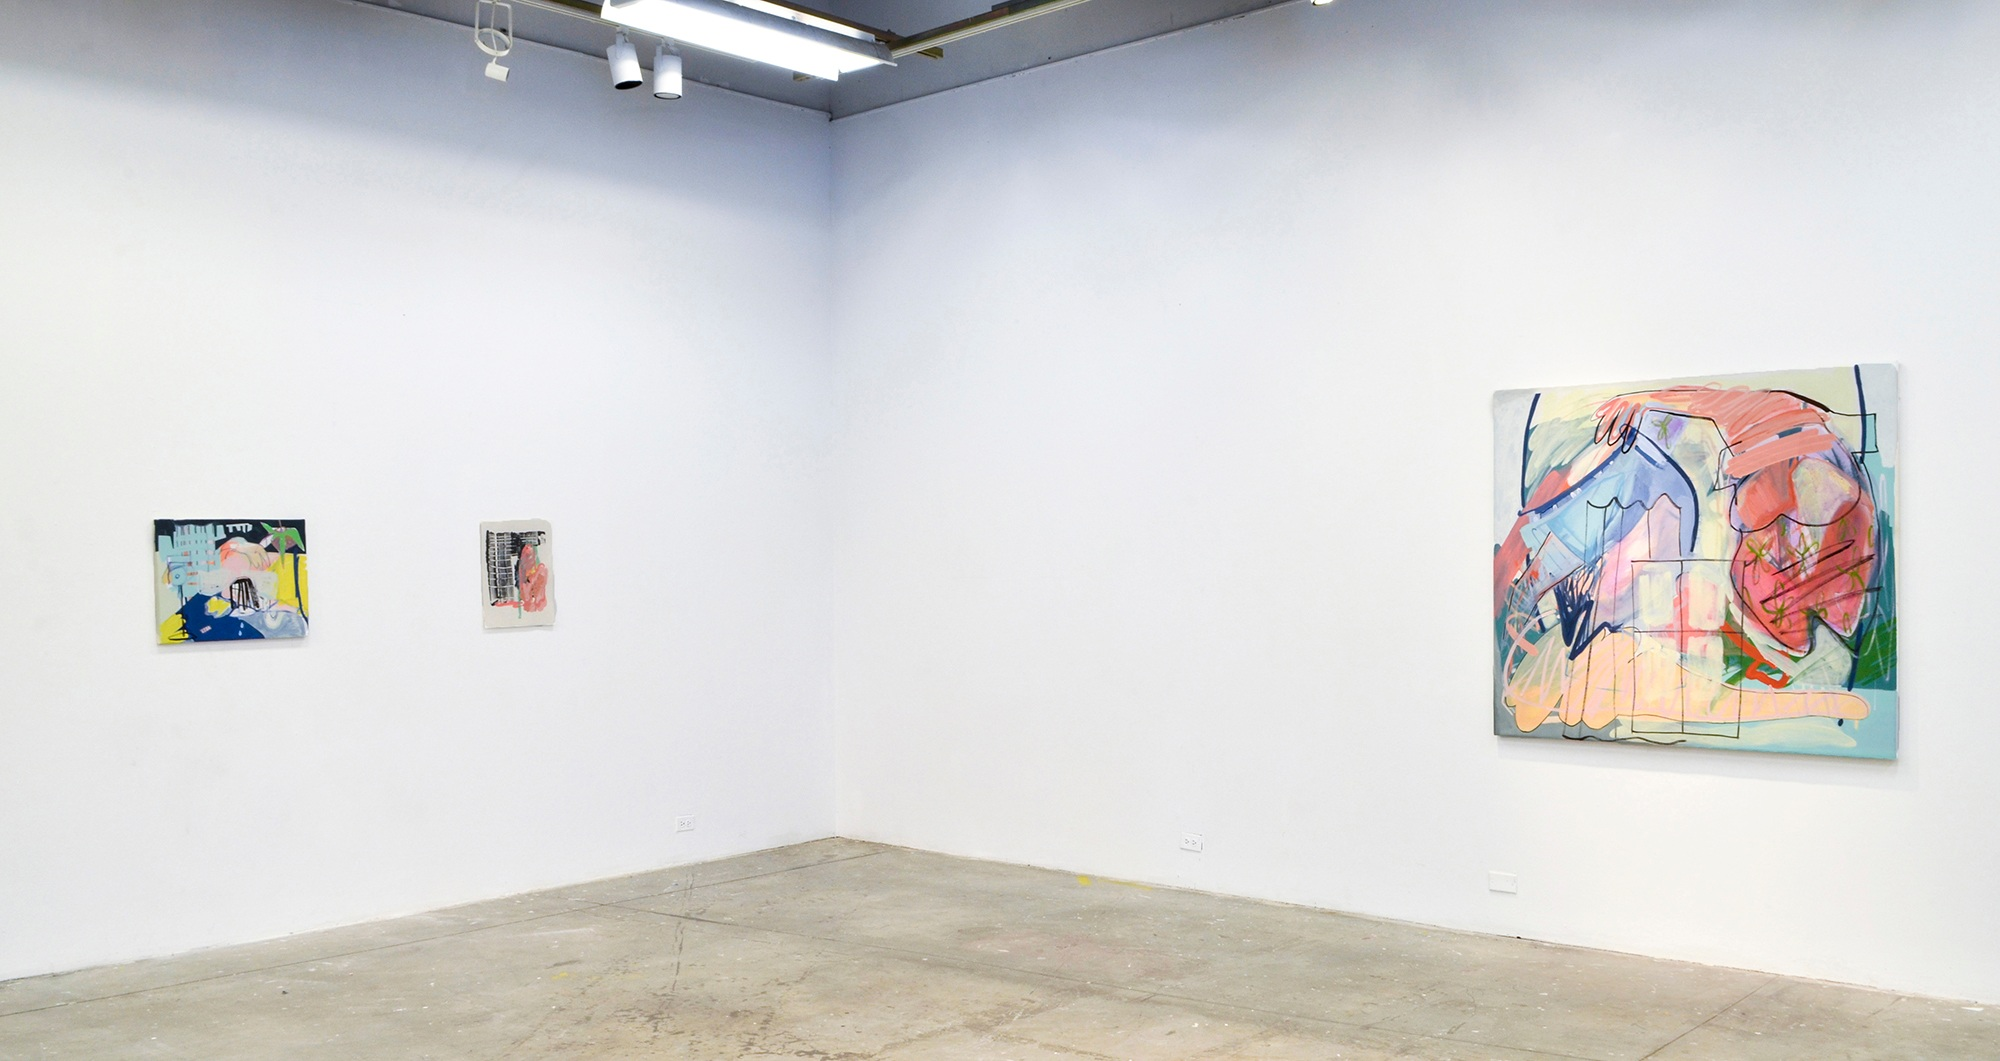 Installation of work created during VCU SSP, 2015. VCU Painting/Sculpture Galleries, Richmond, VA.